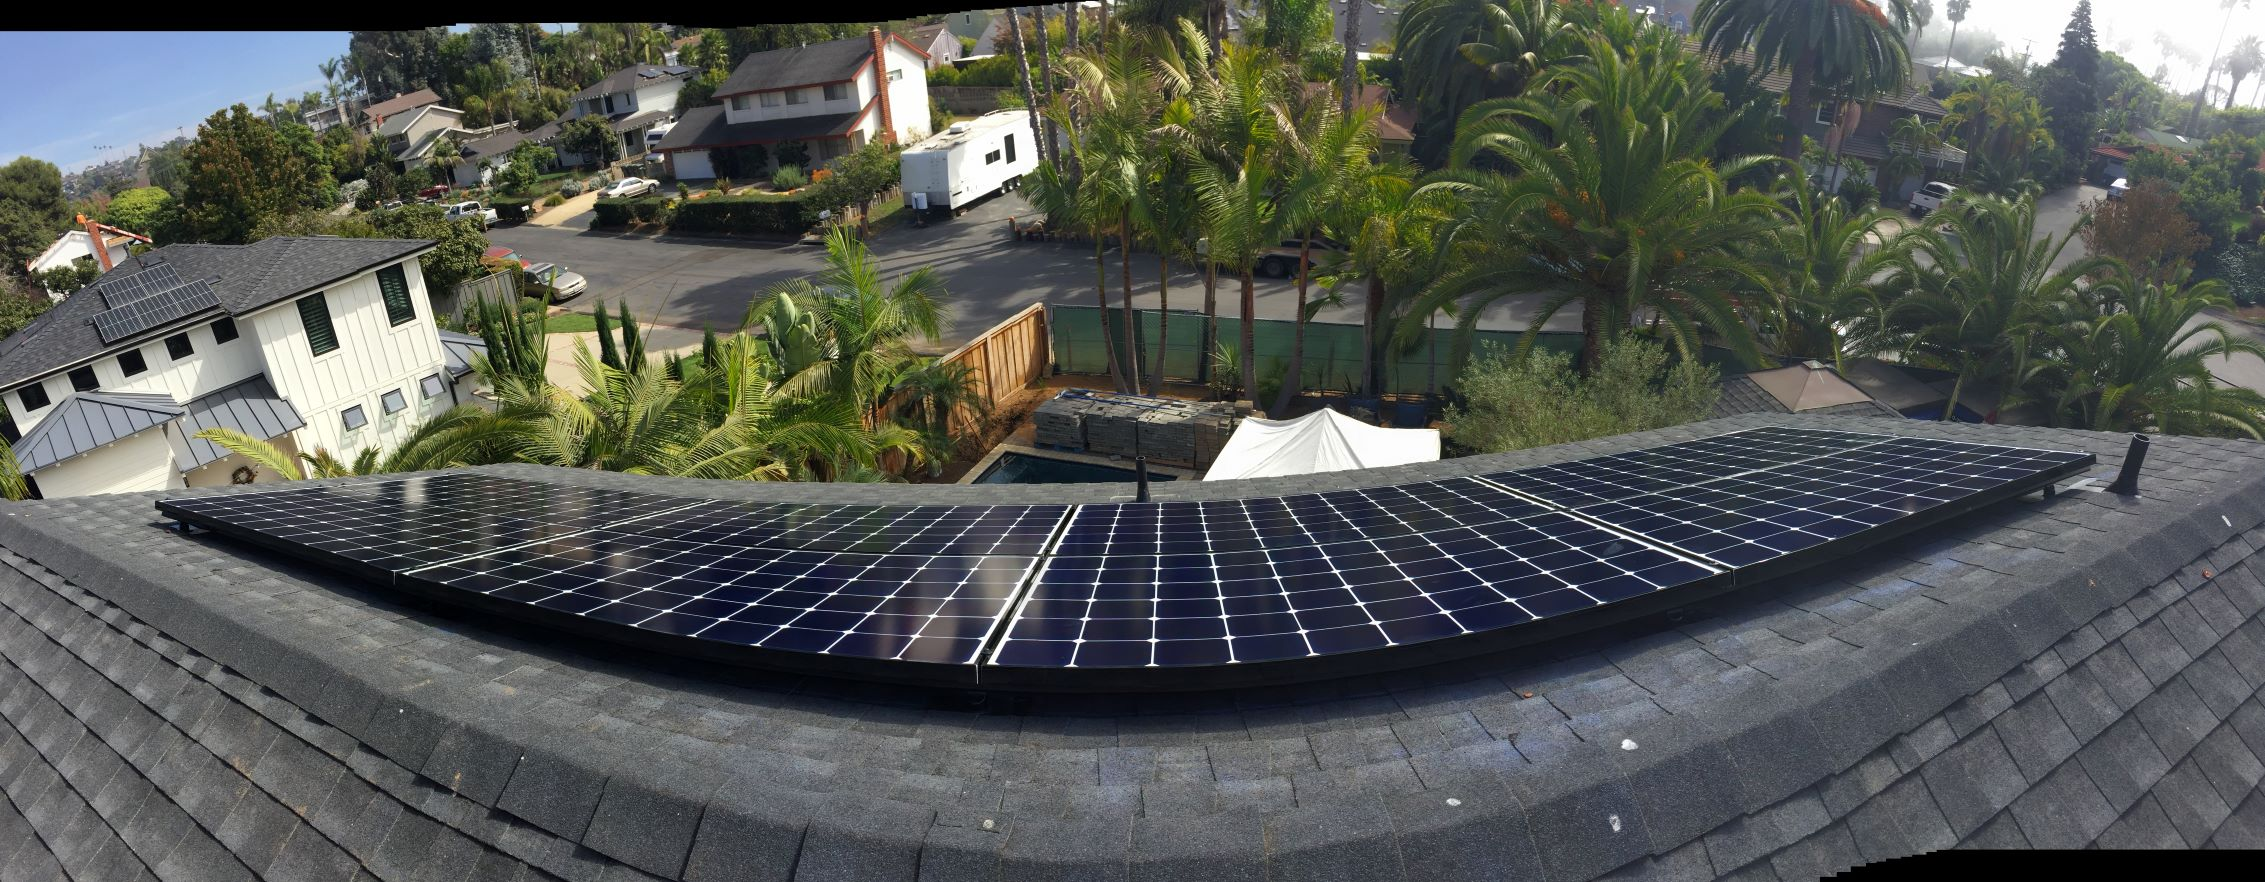 Solar installed in the beautiful, North County coastal city of Encinitas. Located approximately 25 miles north of San Diego, Encinitas has a reputation as a surf and flower capitol. Solar modules are a natural addition for a city that calls for sustainable clean energy.